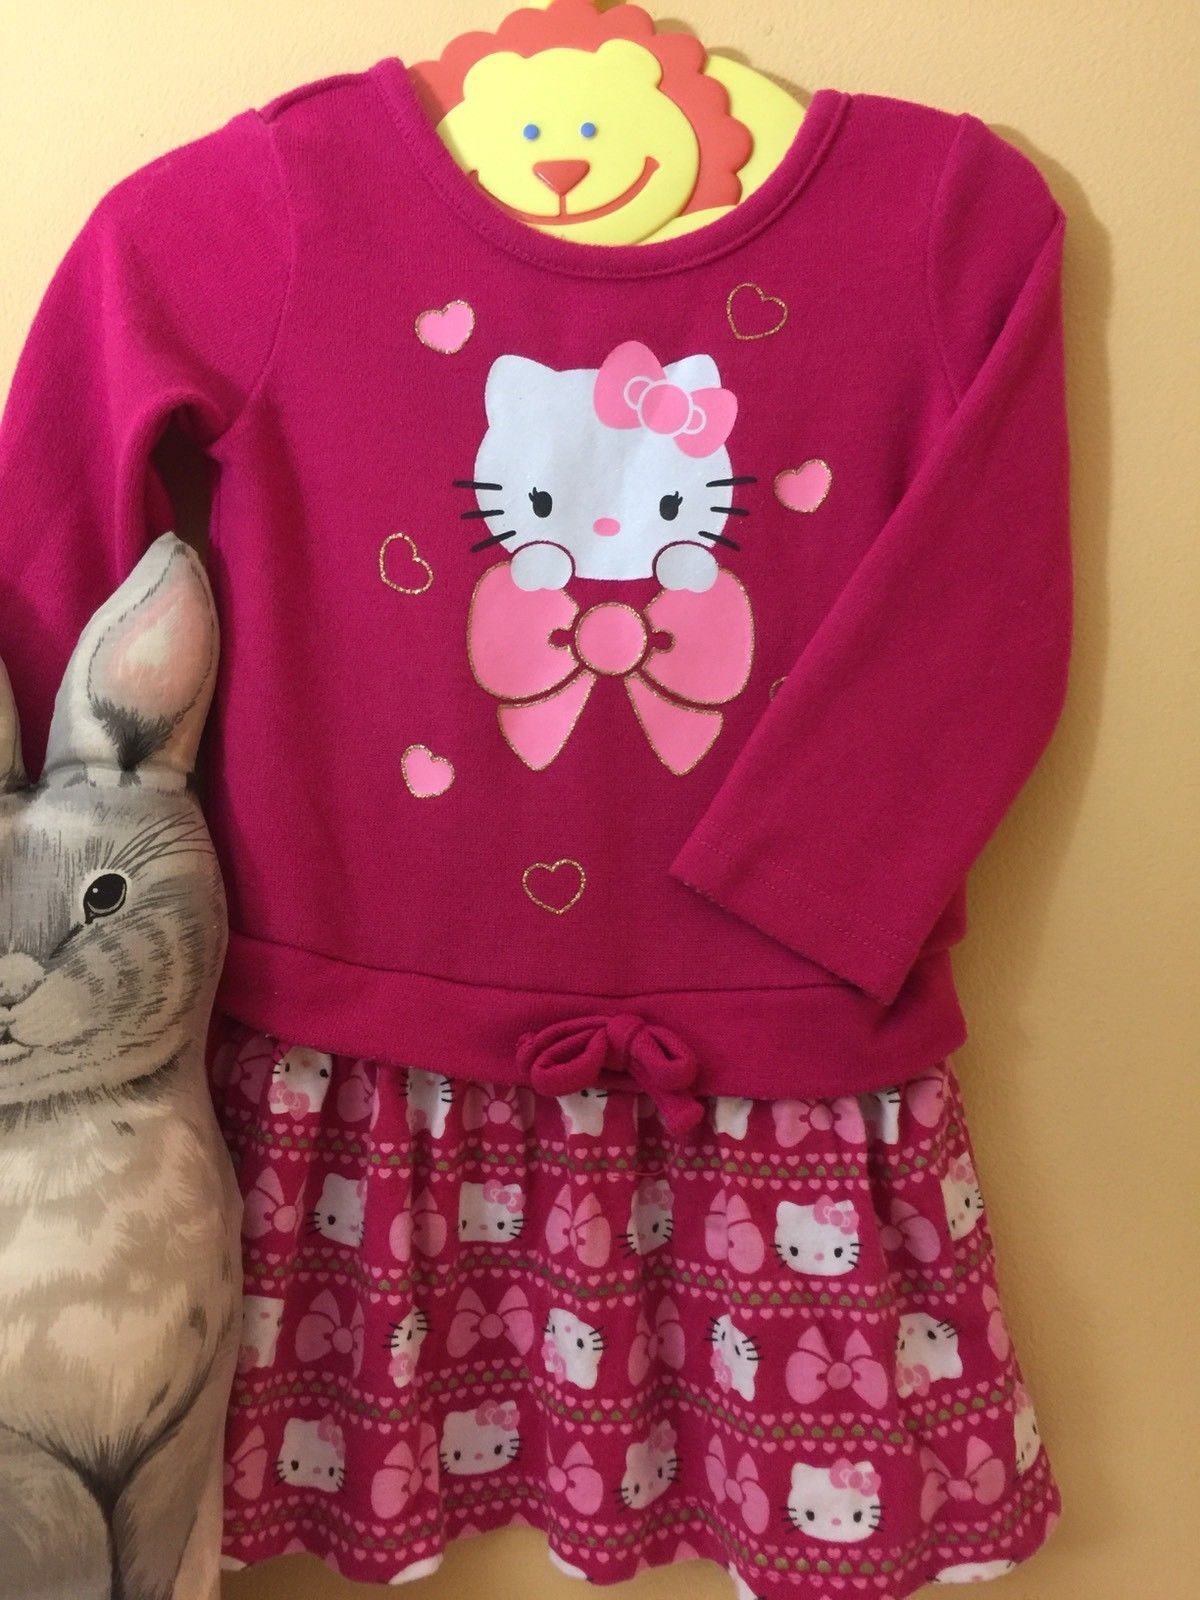 Pink sweater dress outfit  Cool Awesome Hello Kitty Kids Sweater Dress Outfit M Cute Kawaii